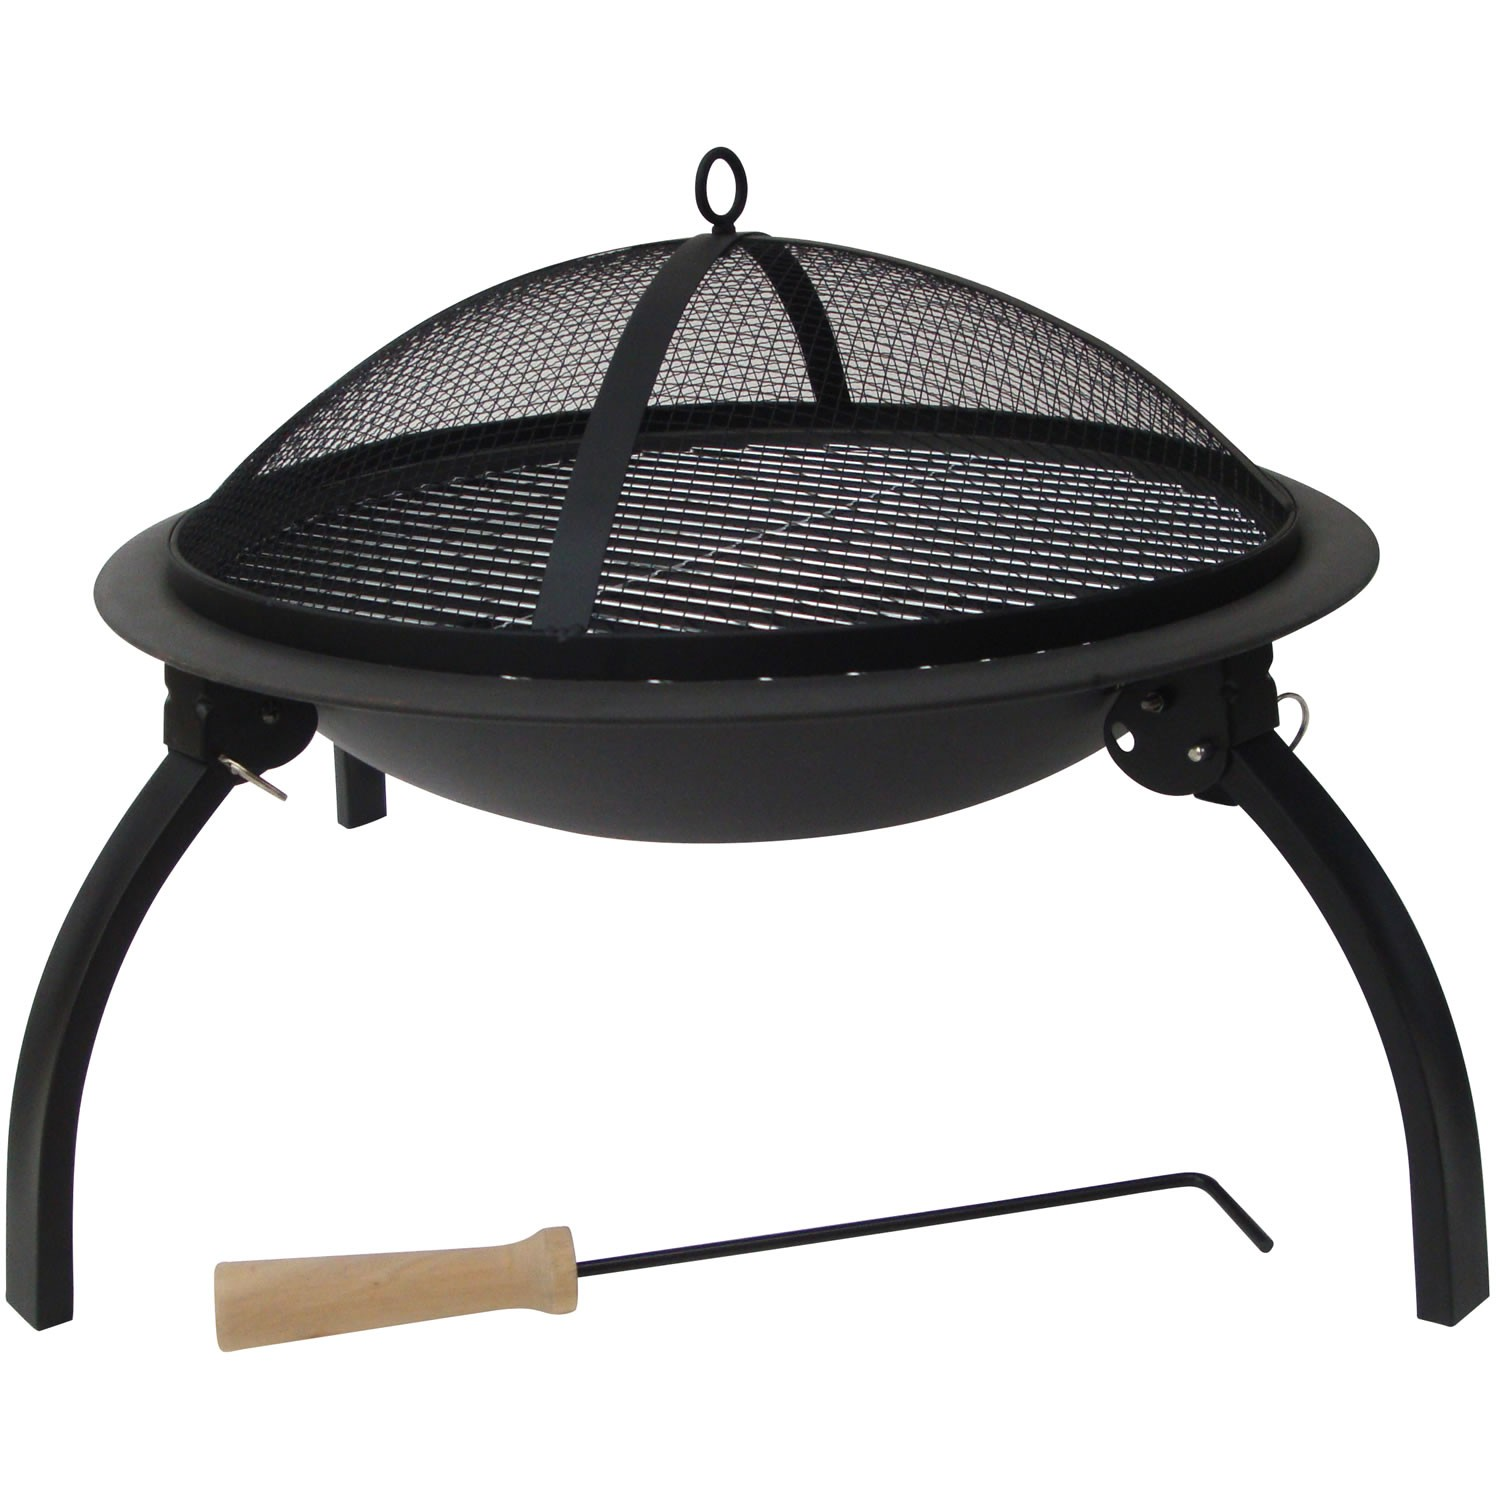 The Pack Includes The Fire Bowl Itself, With Charcoal Grill, BBQ Grill,  Spark Guard And A Little Tool To Move The Grills Or Guard While In Use.